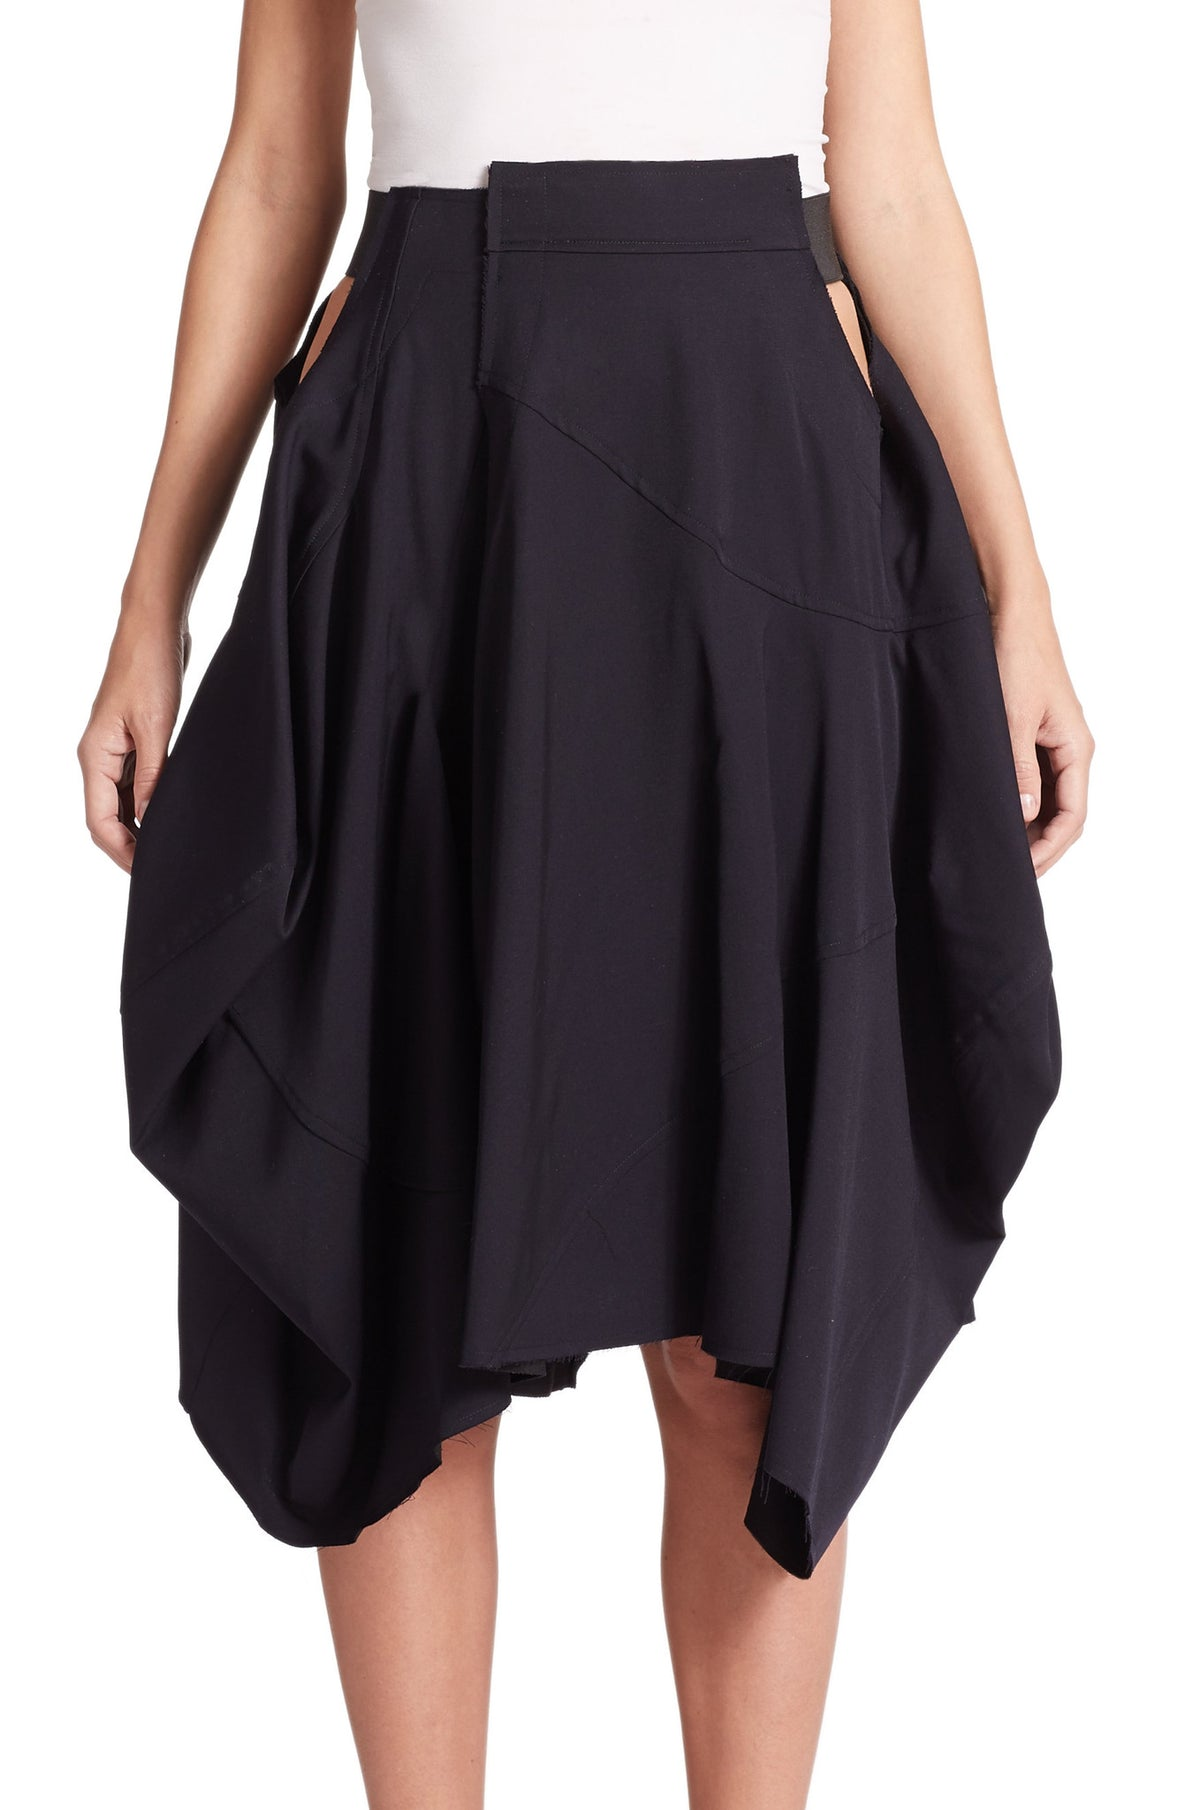 m source call type draped skirt us url full life product drapes sale front black h hmprod screen set view size